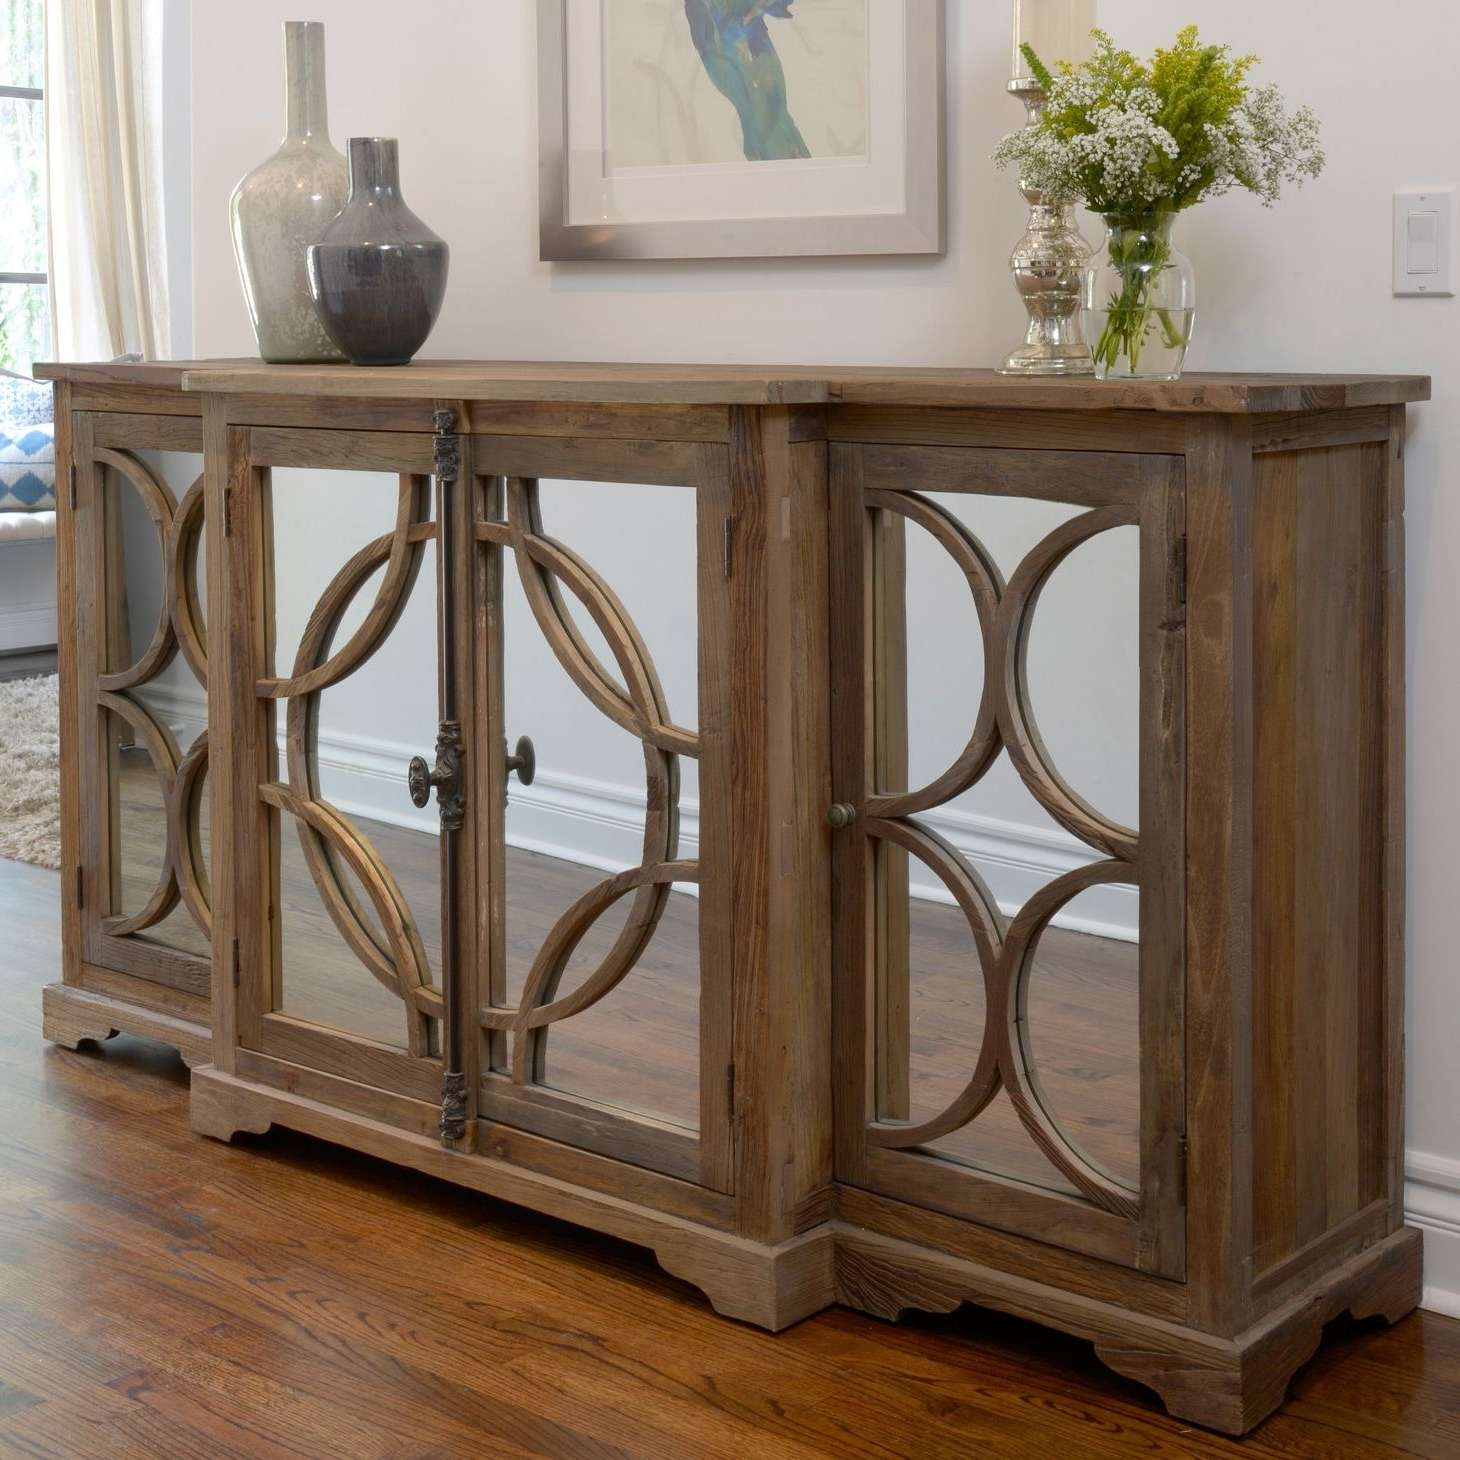 Contemporary Sideboards And Buffets Best Of And Add This Wood With Buffets Sideboards (View 13 of 20)